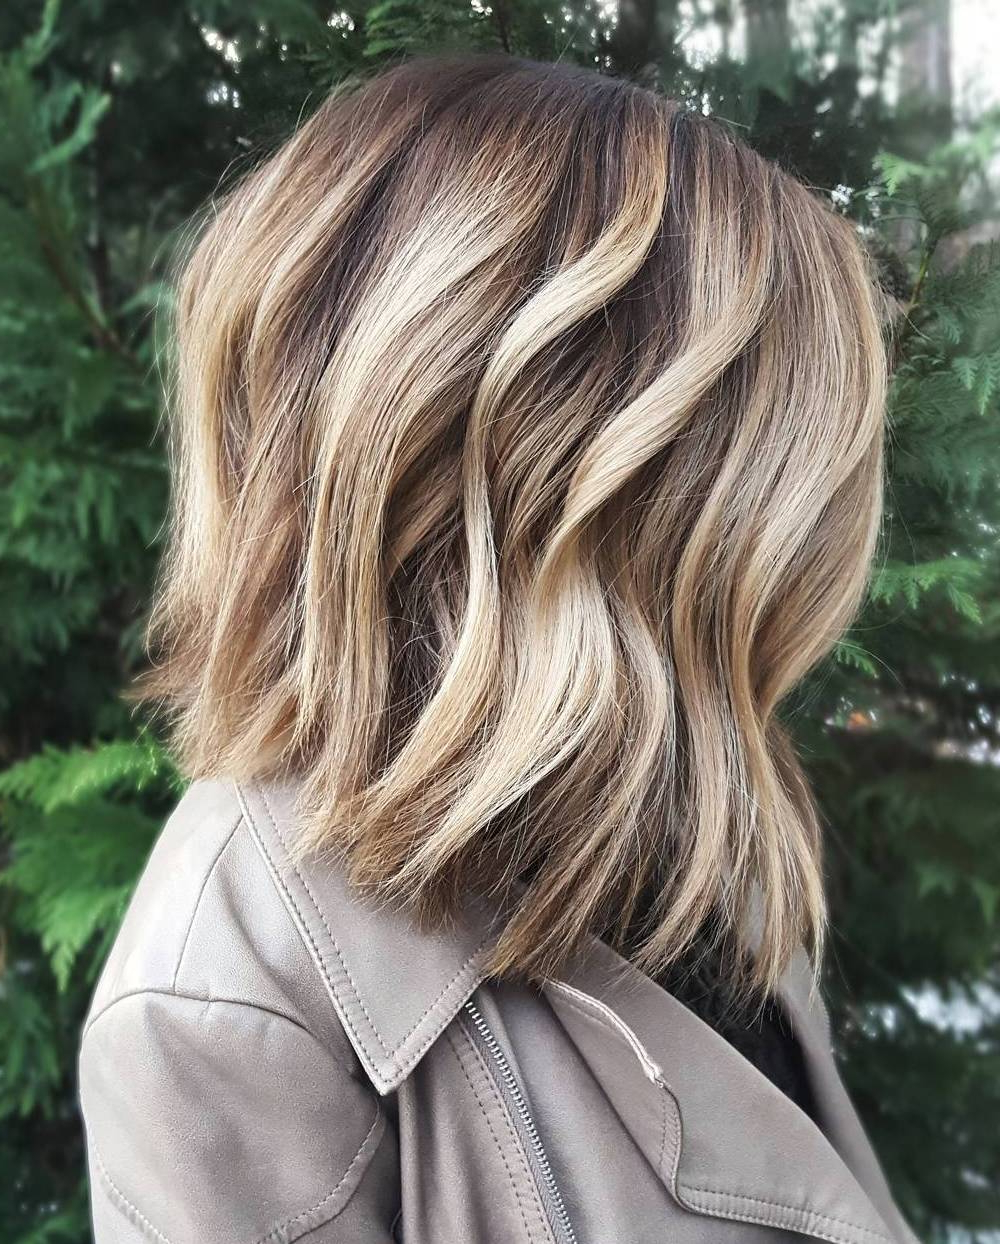 20 Dirty Blonde Hair Ideas That Work On Everyone With Regard To Sun Kissed Bob Haircuts (View 10 of 20)